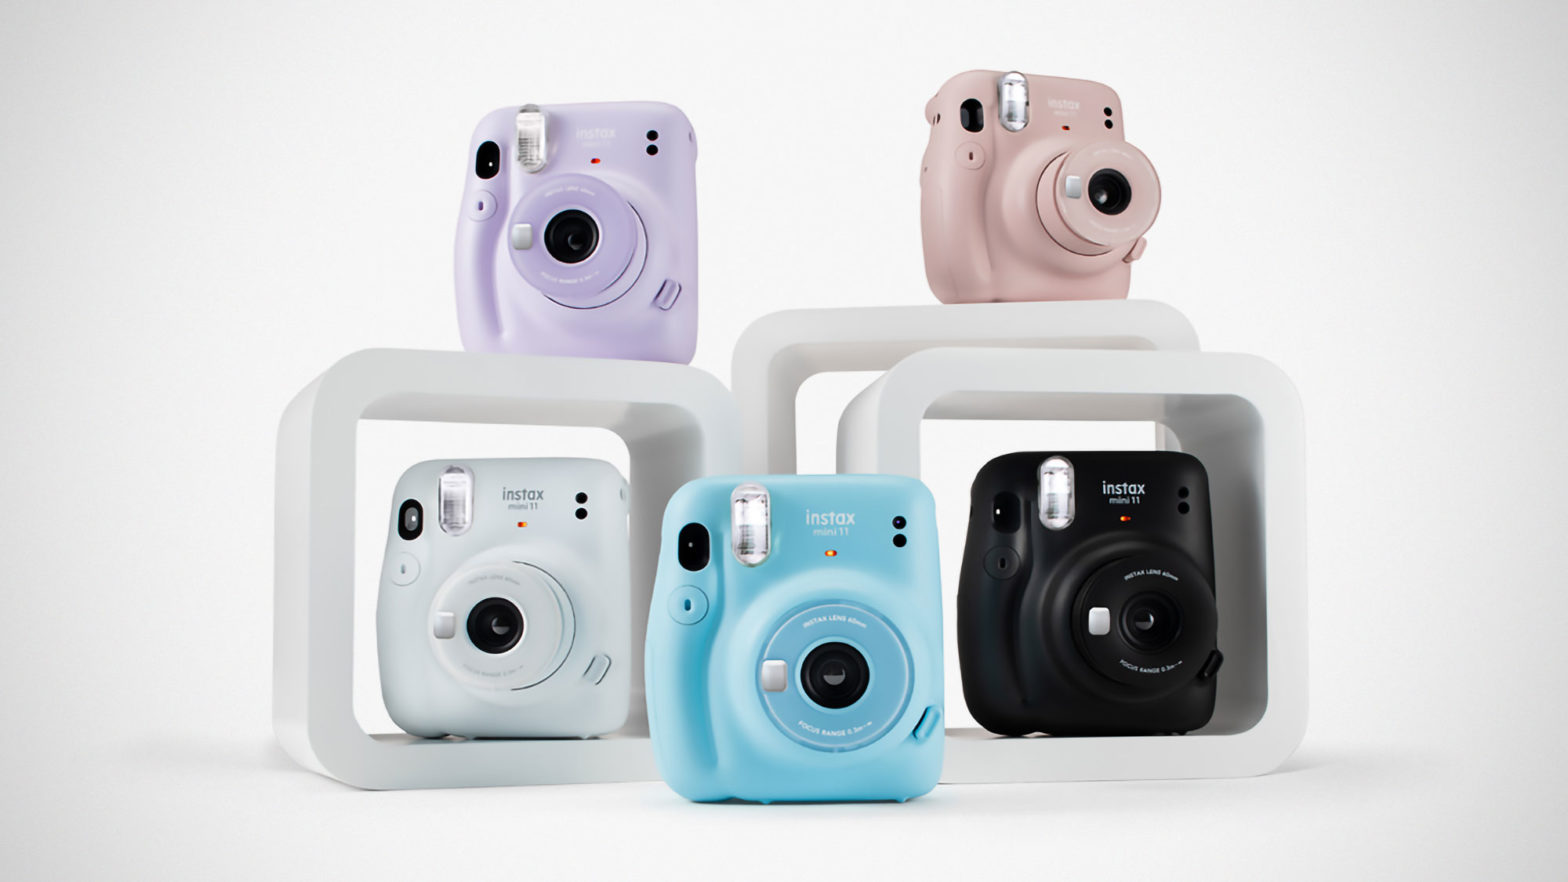 Fujifilm Instax Mini 11 Instant Camera